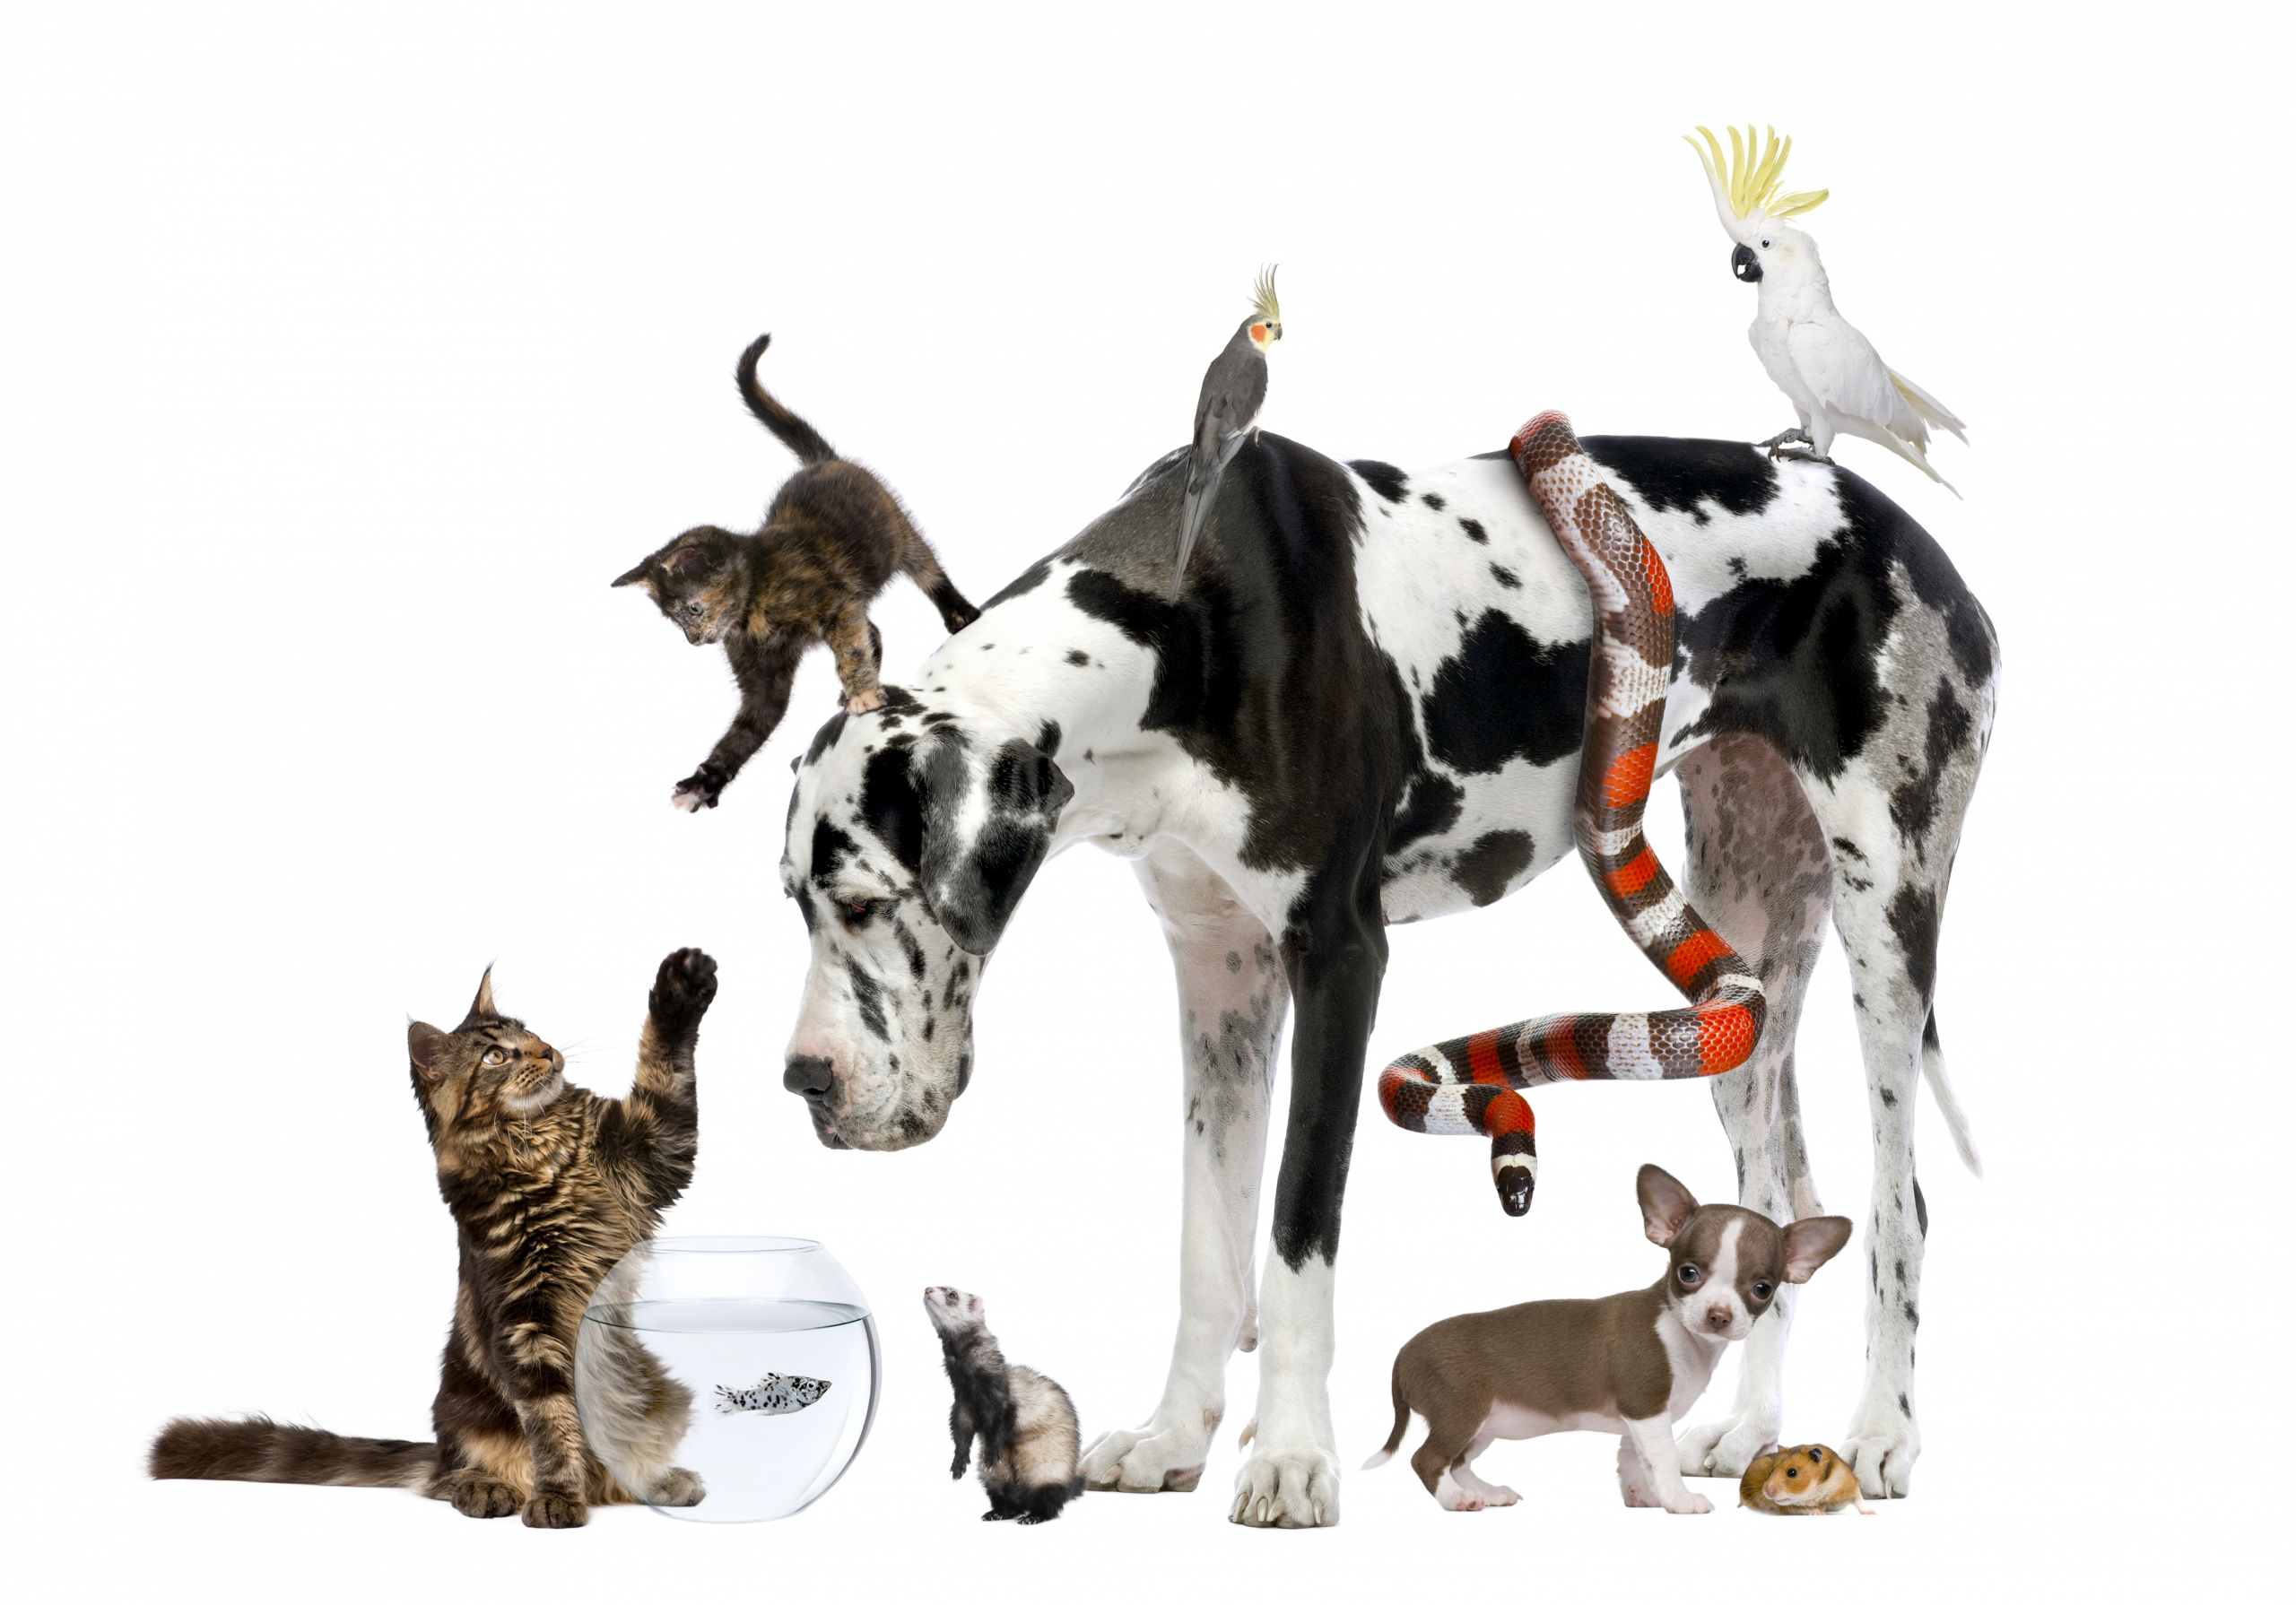 Pleasant Hill Pet & Livestock for all pet and livestock needs